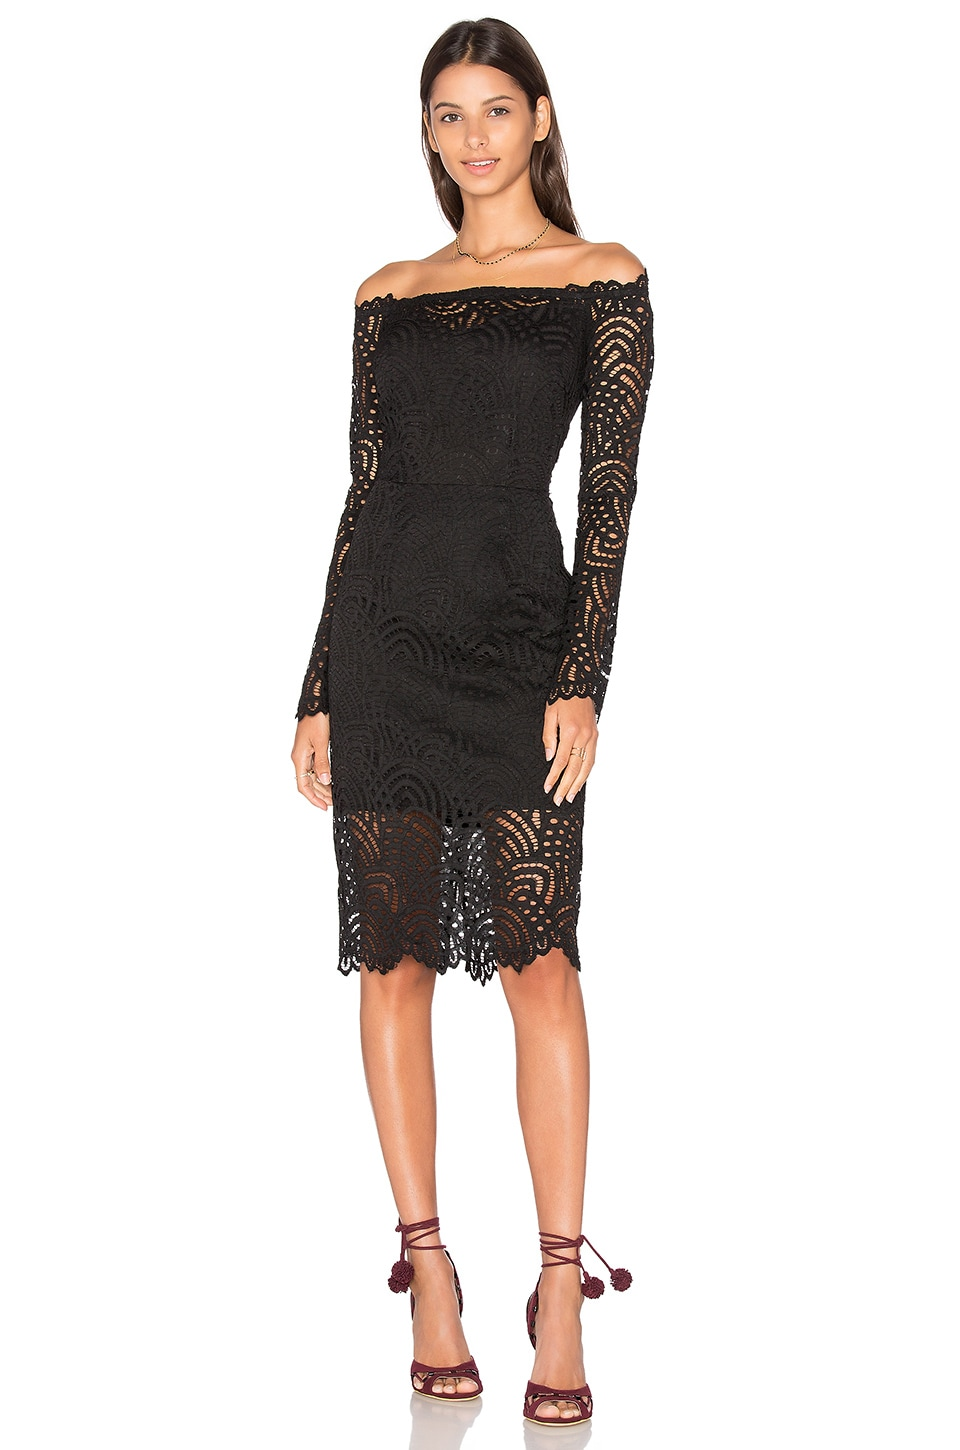 Bobi BLACK Lace Crochet Overlay Long Sleeve Off The Shoulder Dress ...